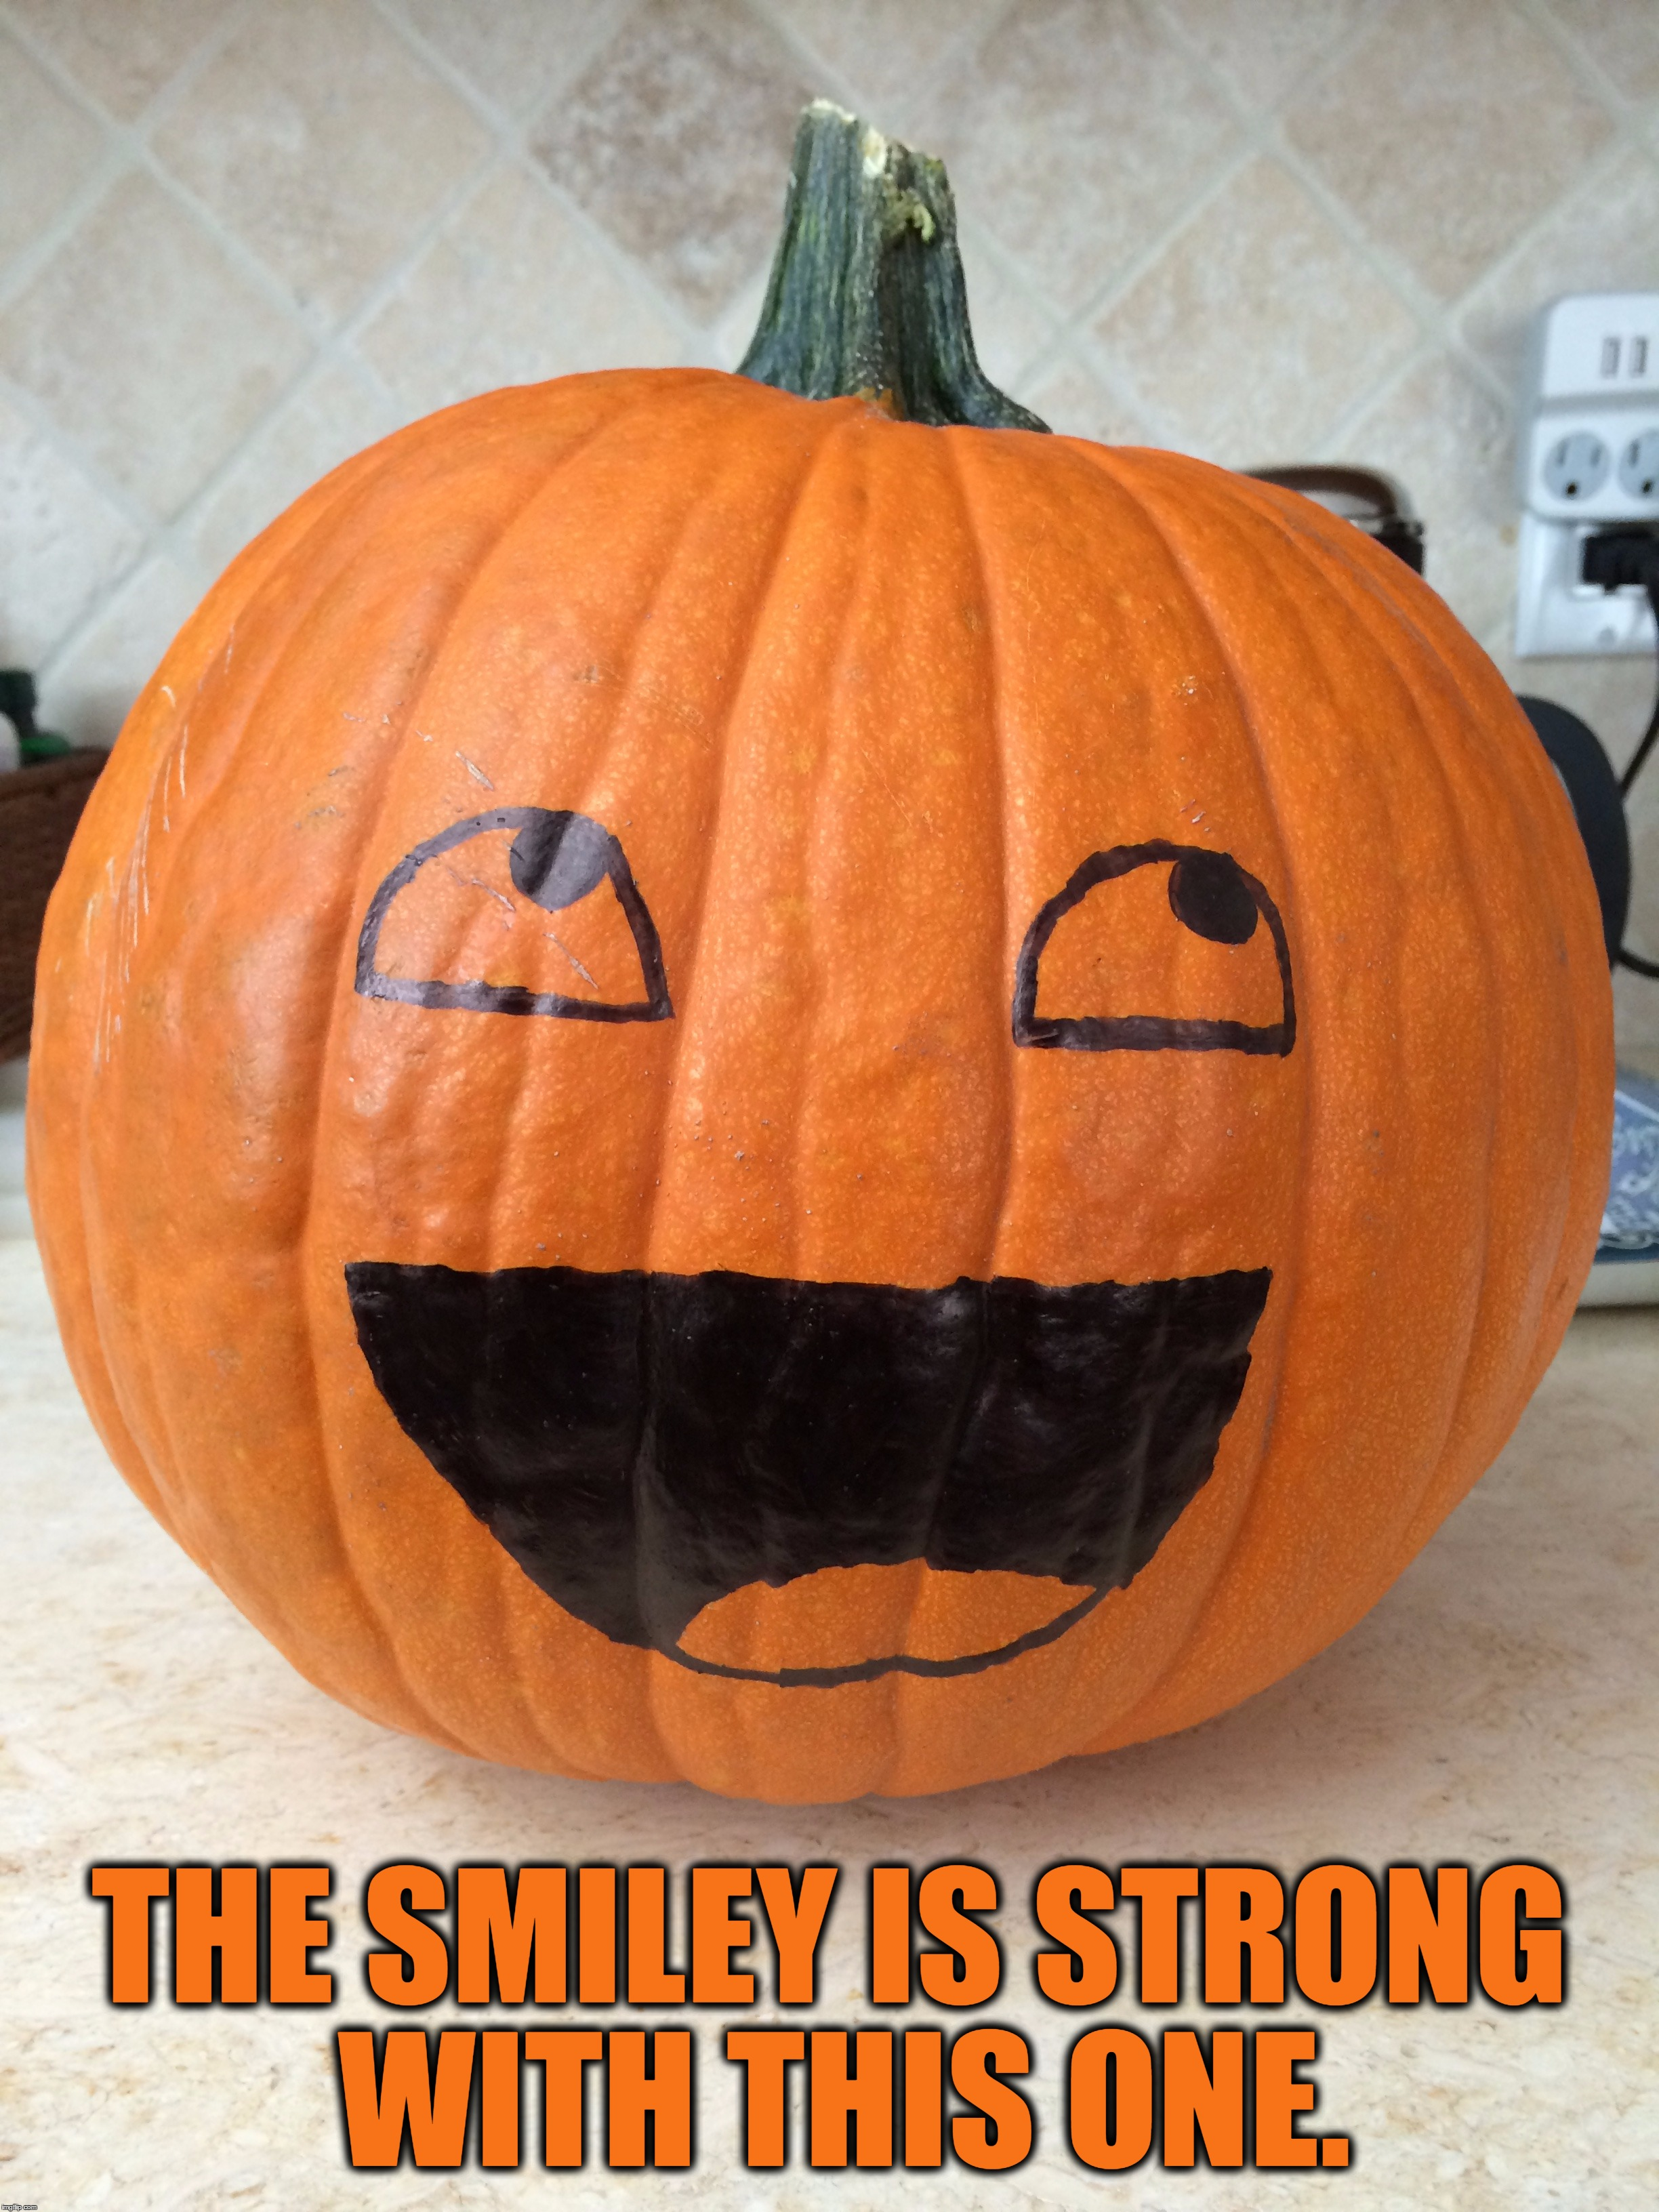 THE SMILEY IS STRONG WITH THIS ONE. | made w/ Imgflip meme maker